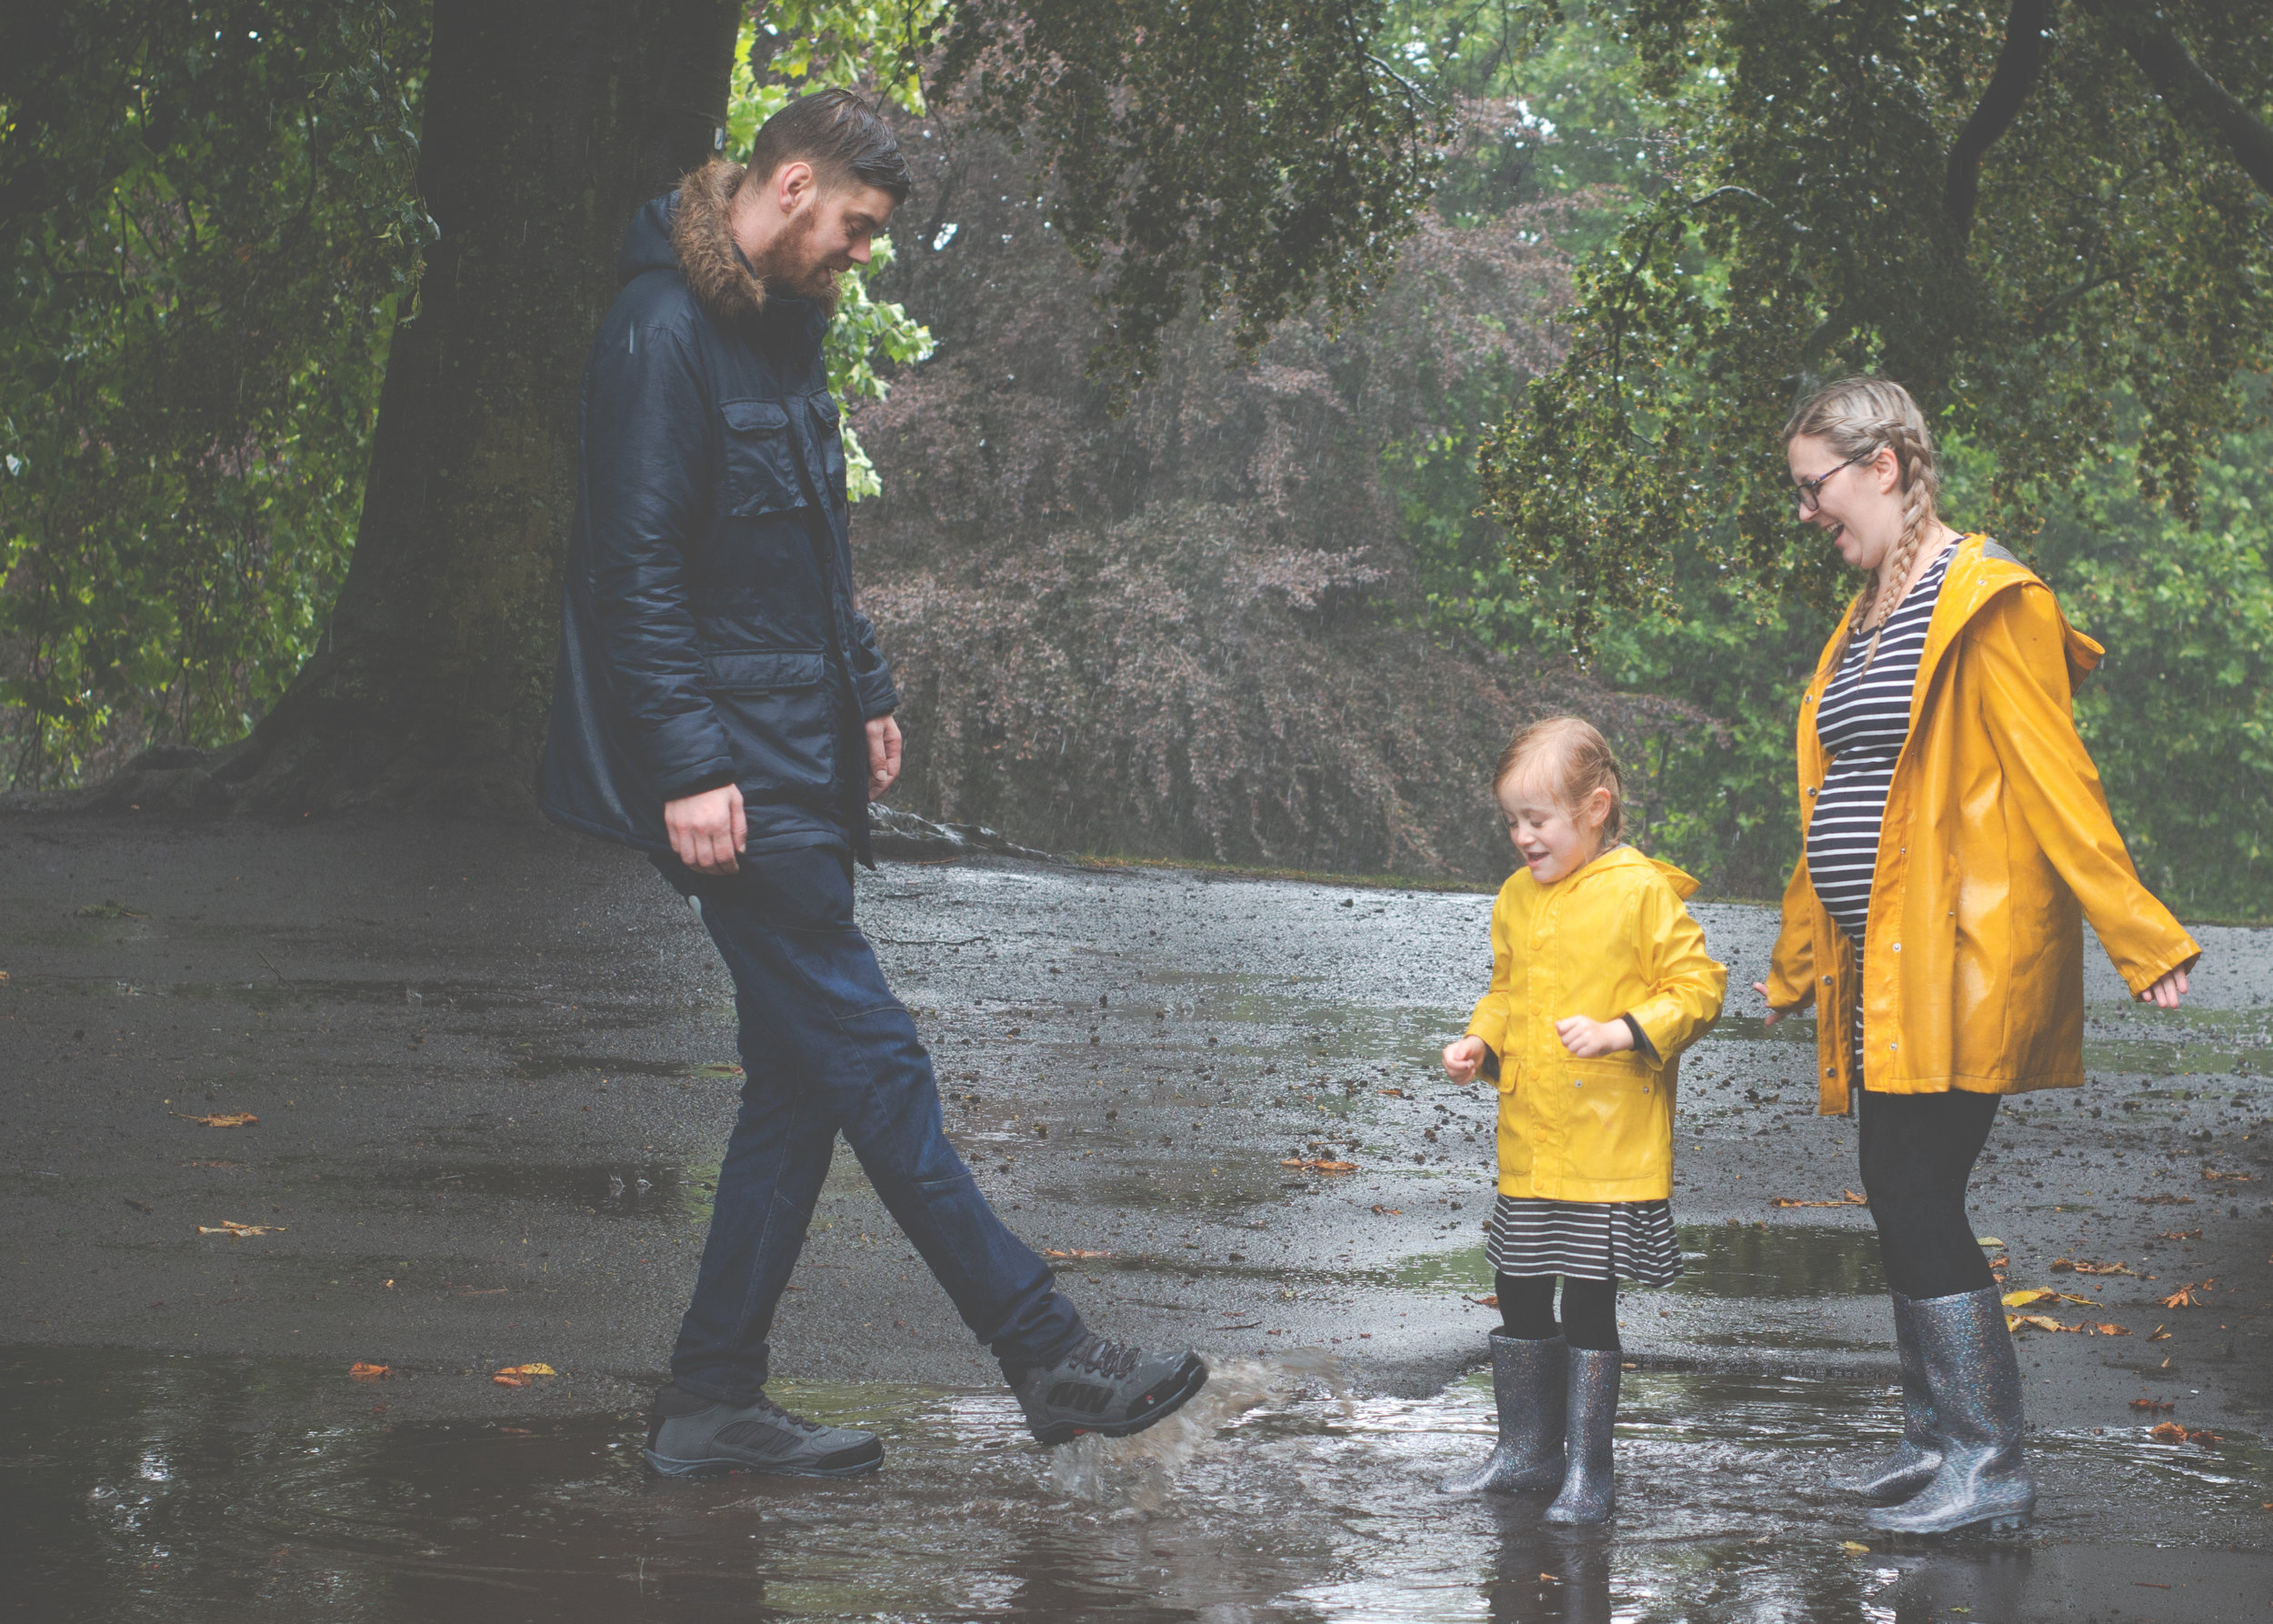 maternity-pregnancy-photoshoot-bradford-outdoor-rainy-cliffe-castle-3